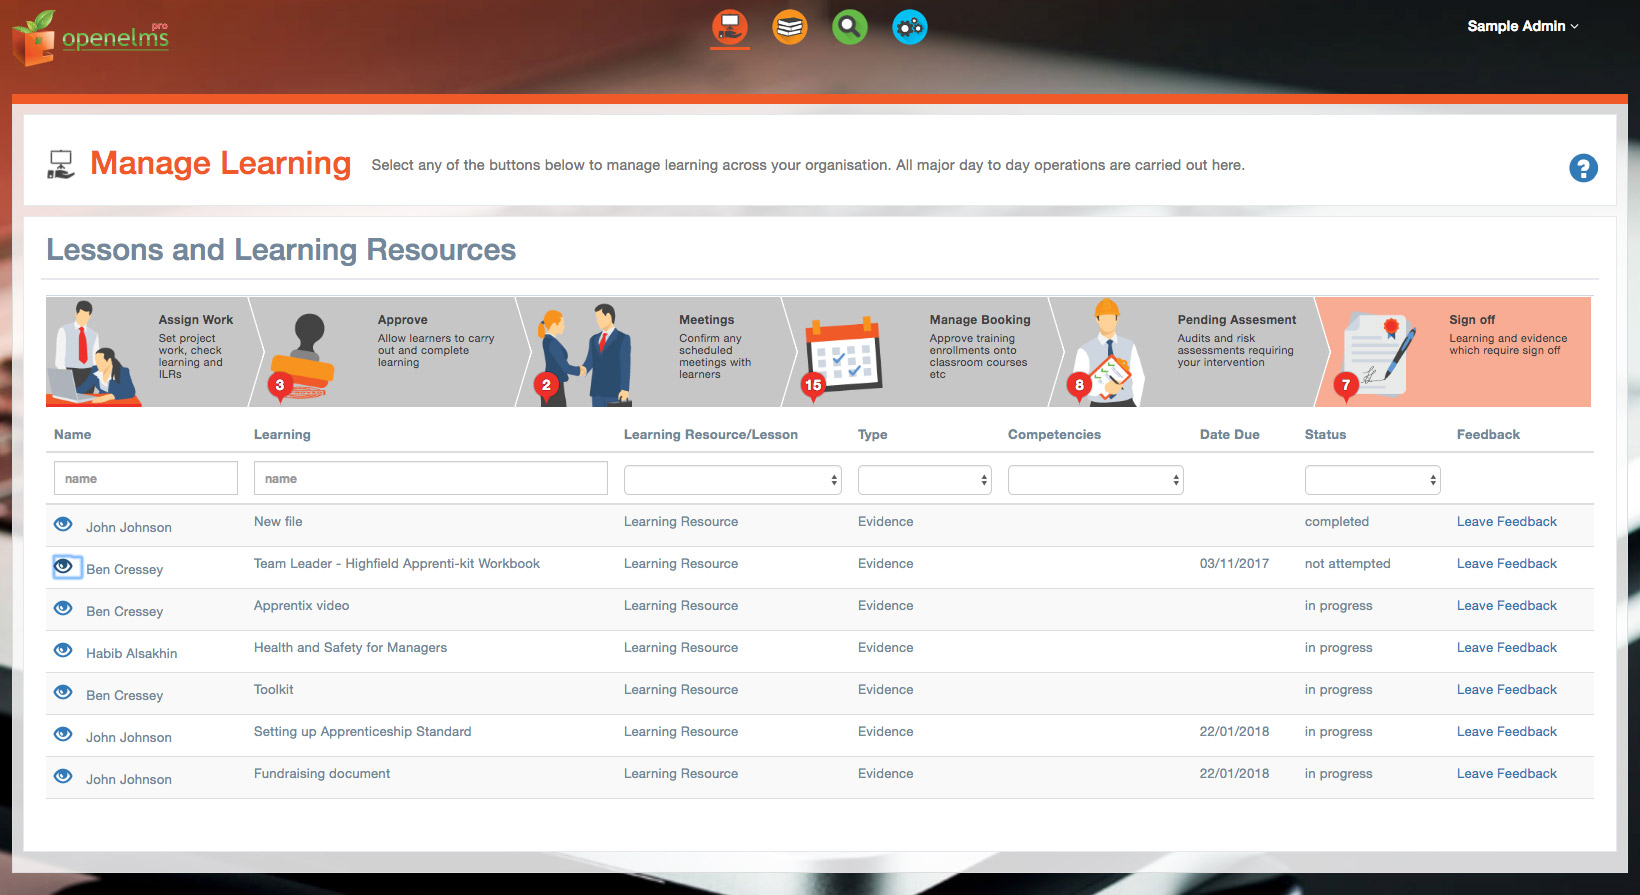 calendar control alerts management of key learning tasks